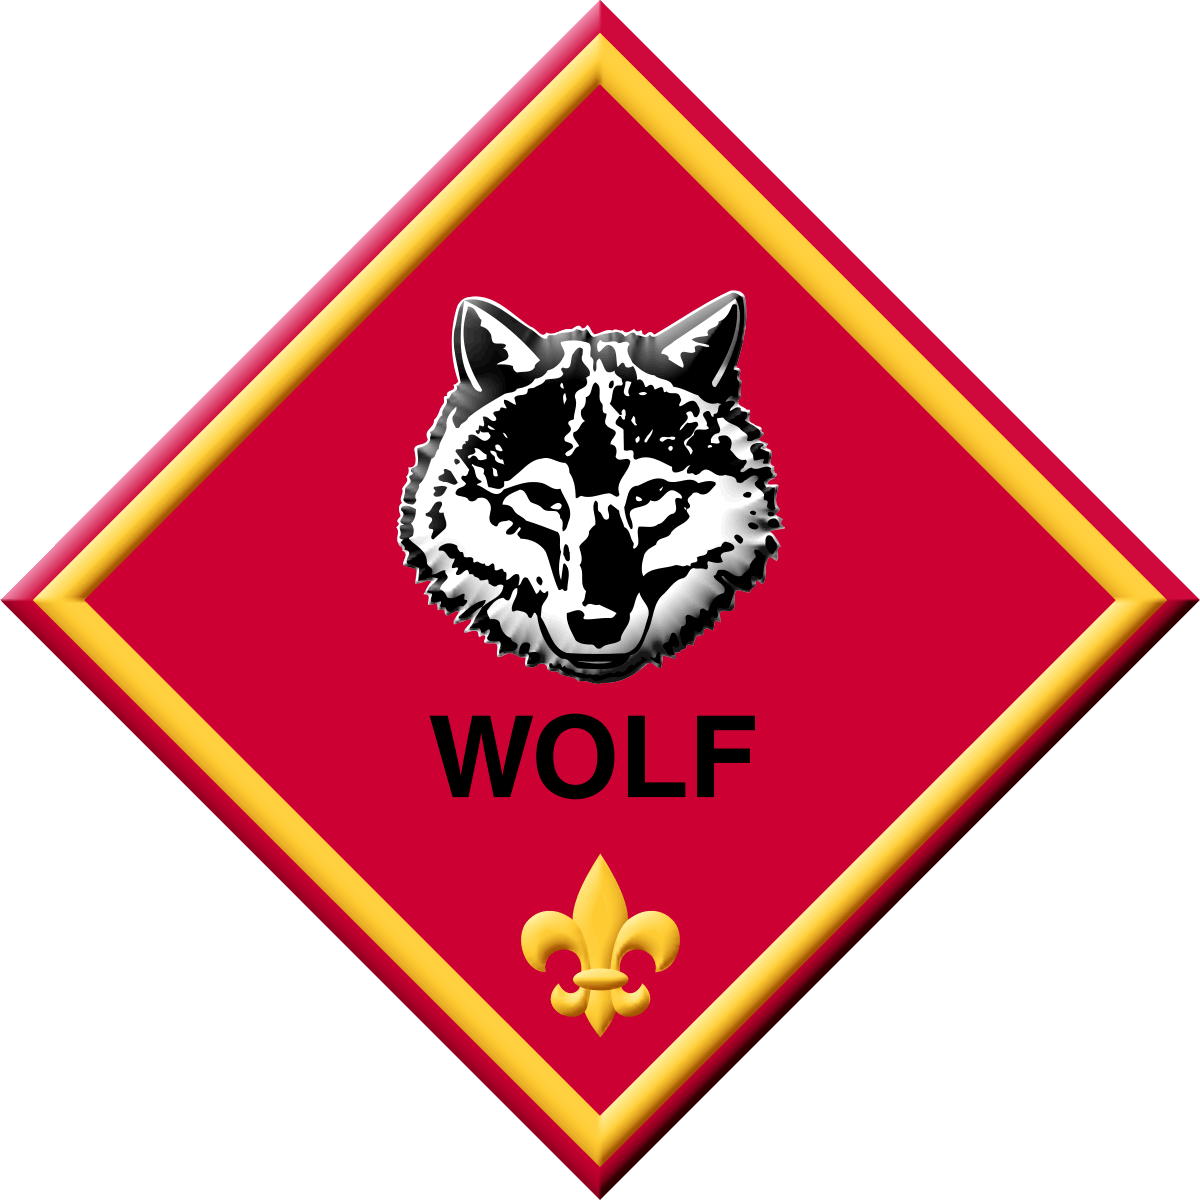 White Wolf clipart cub scout Pack 59  Cub Scouts